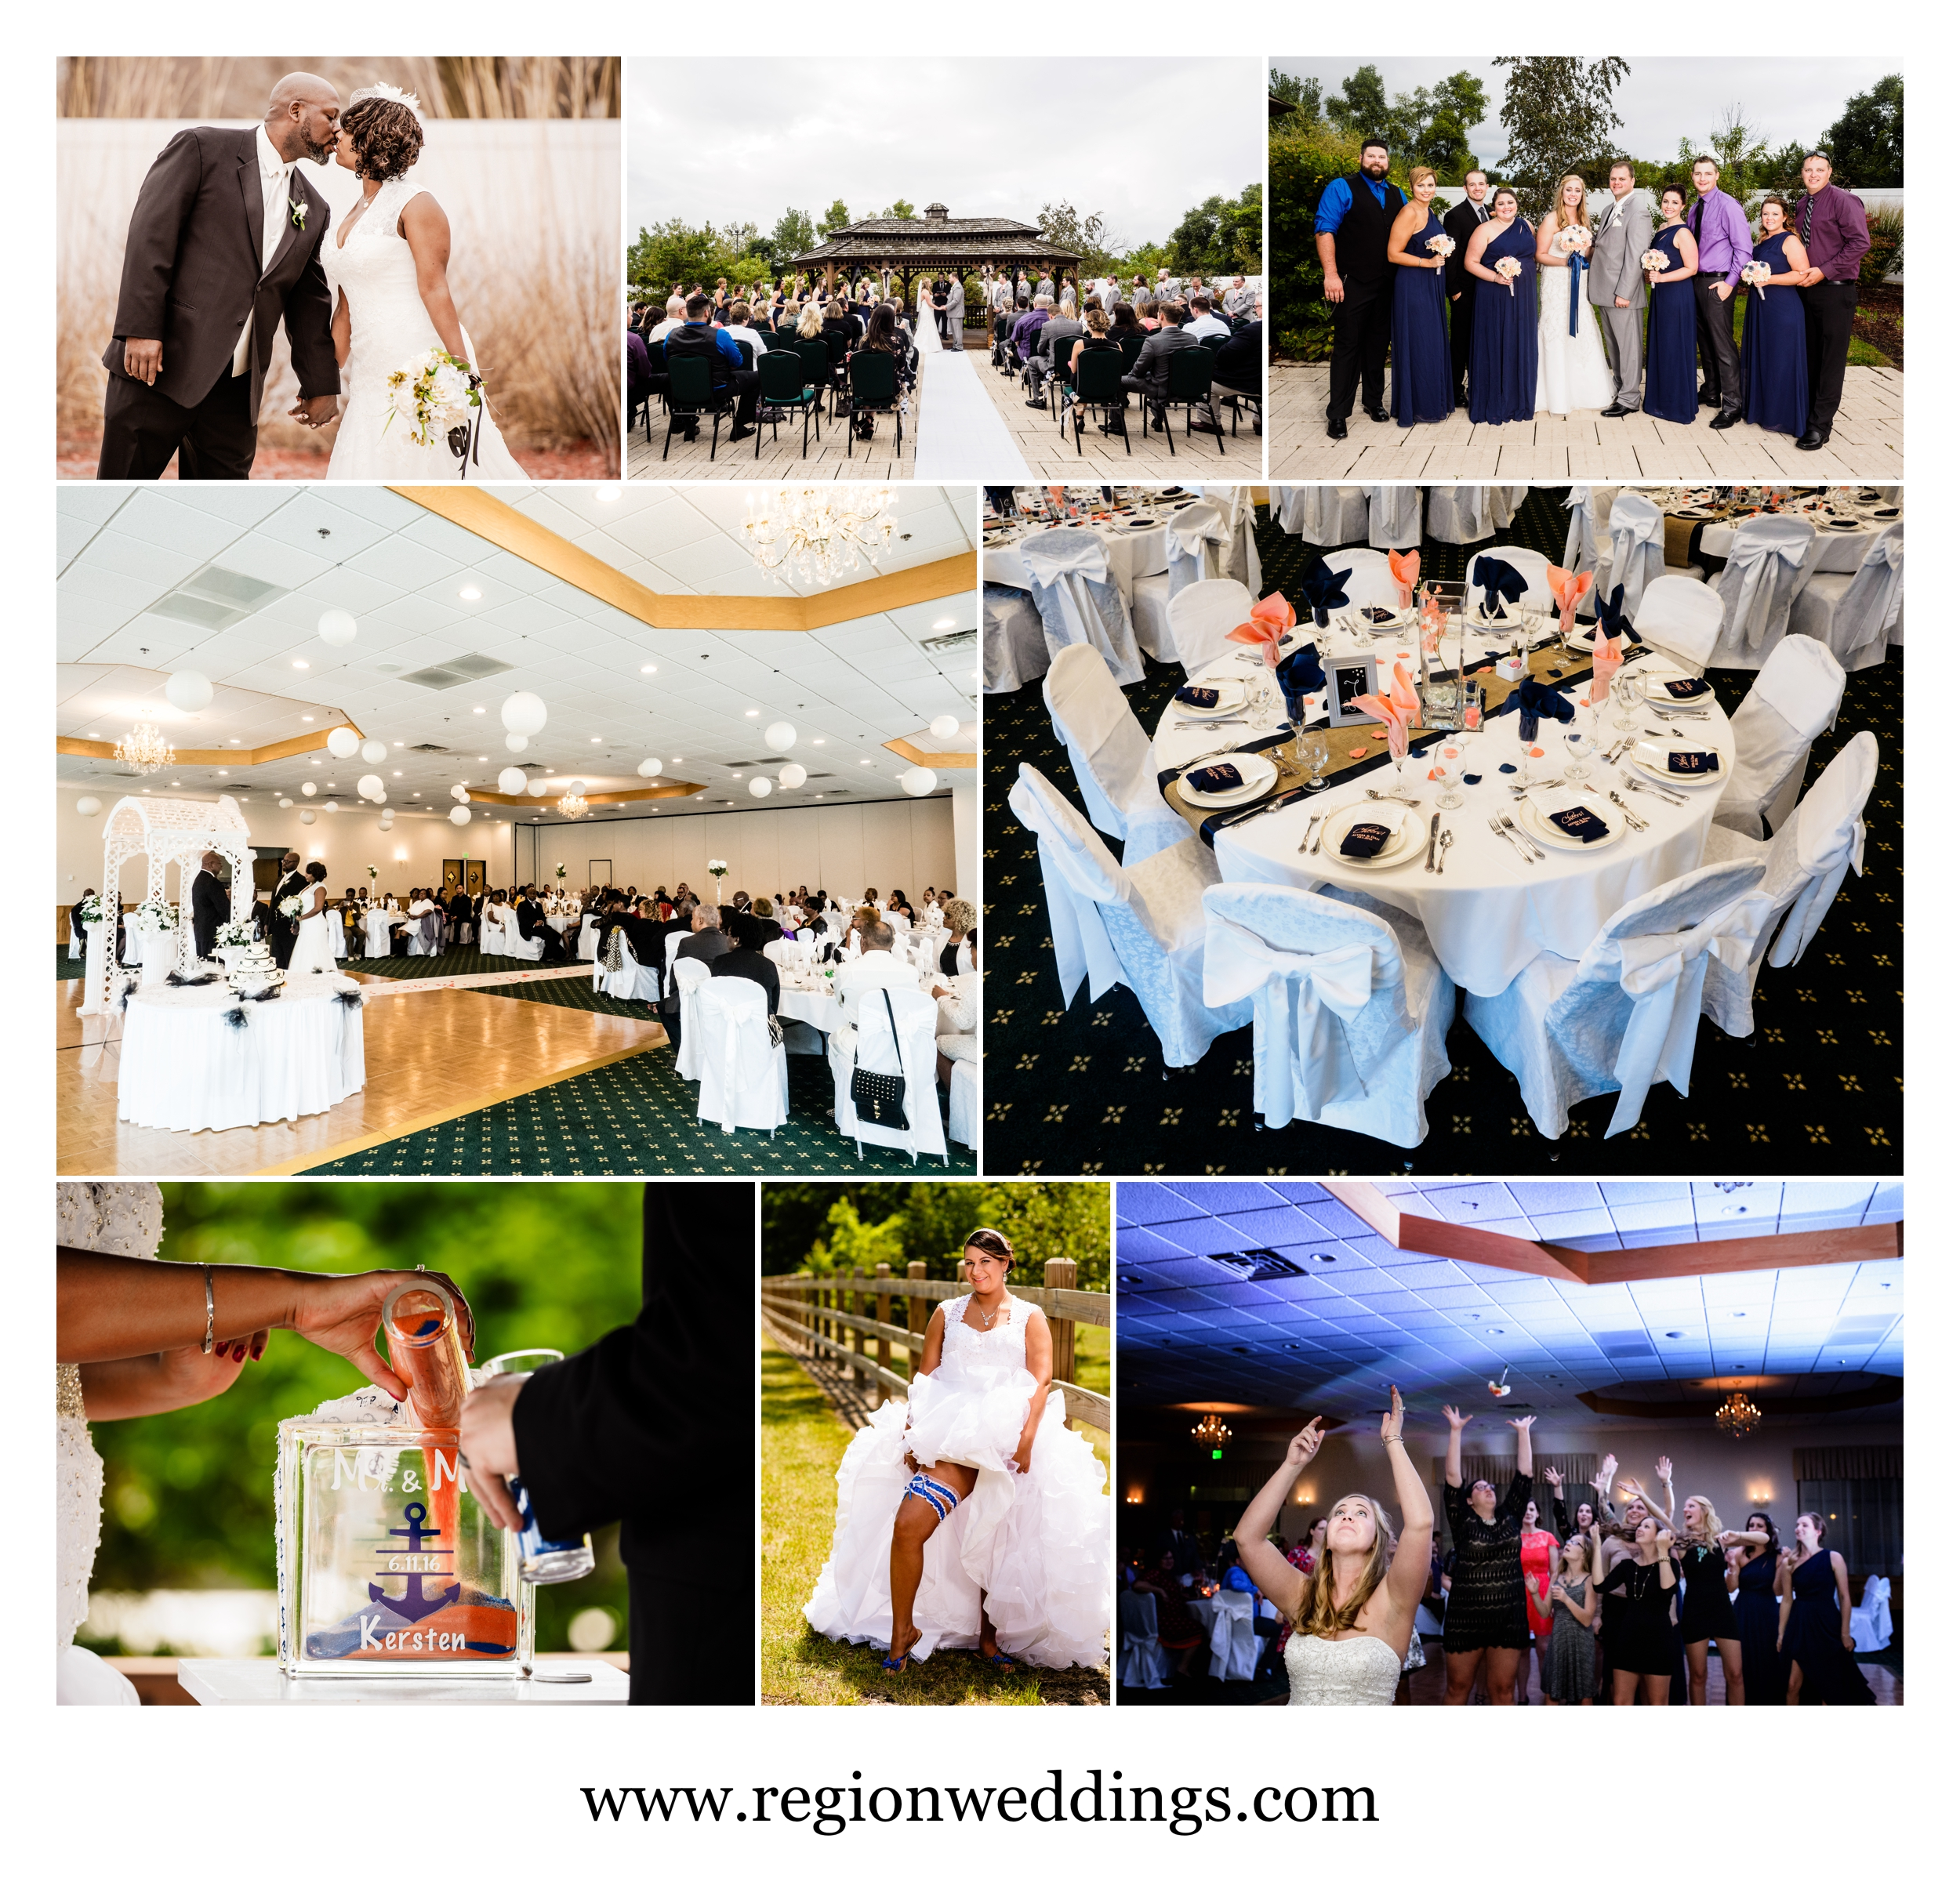 Wedding photos at The Patrician in Schererville, Indiana.